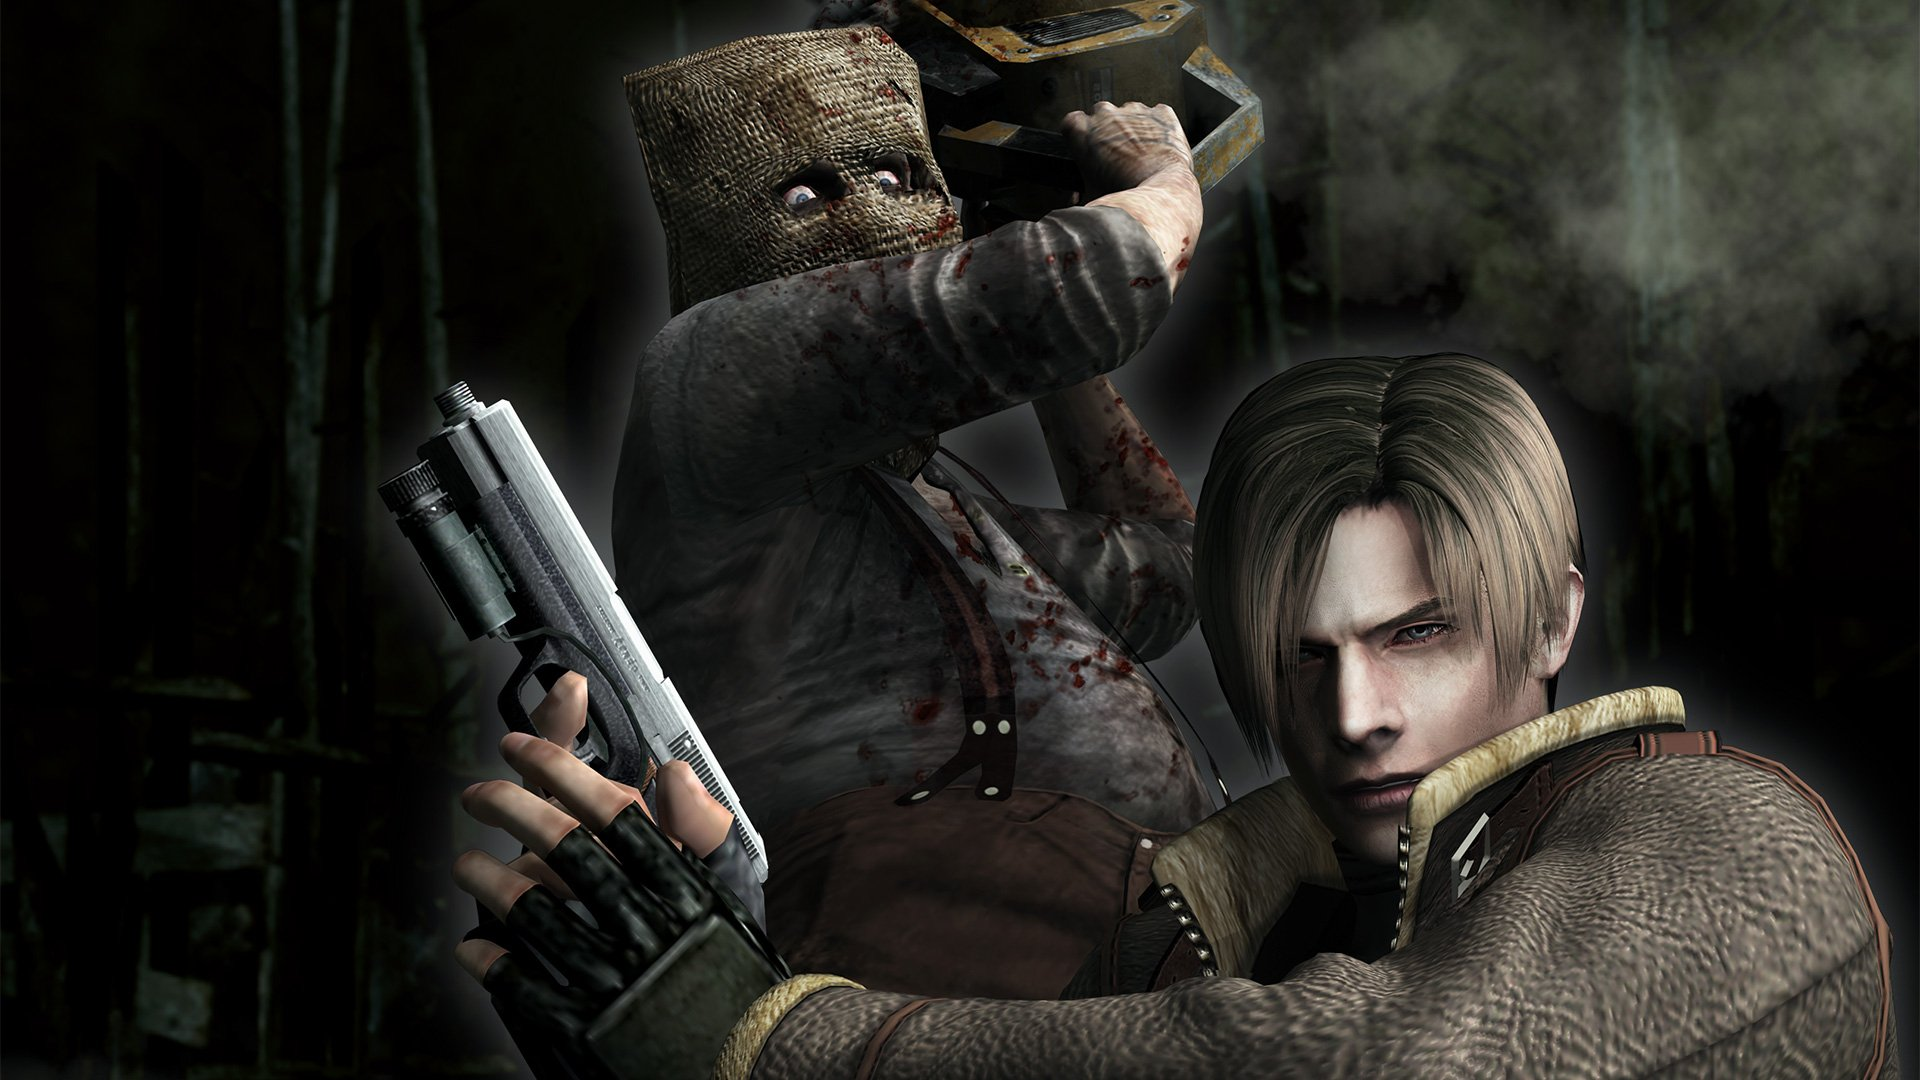 Did you squeeze in any Resident Evil replays before Village? I couldn't resist screenshot